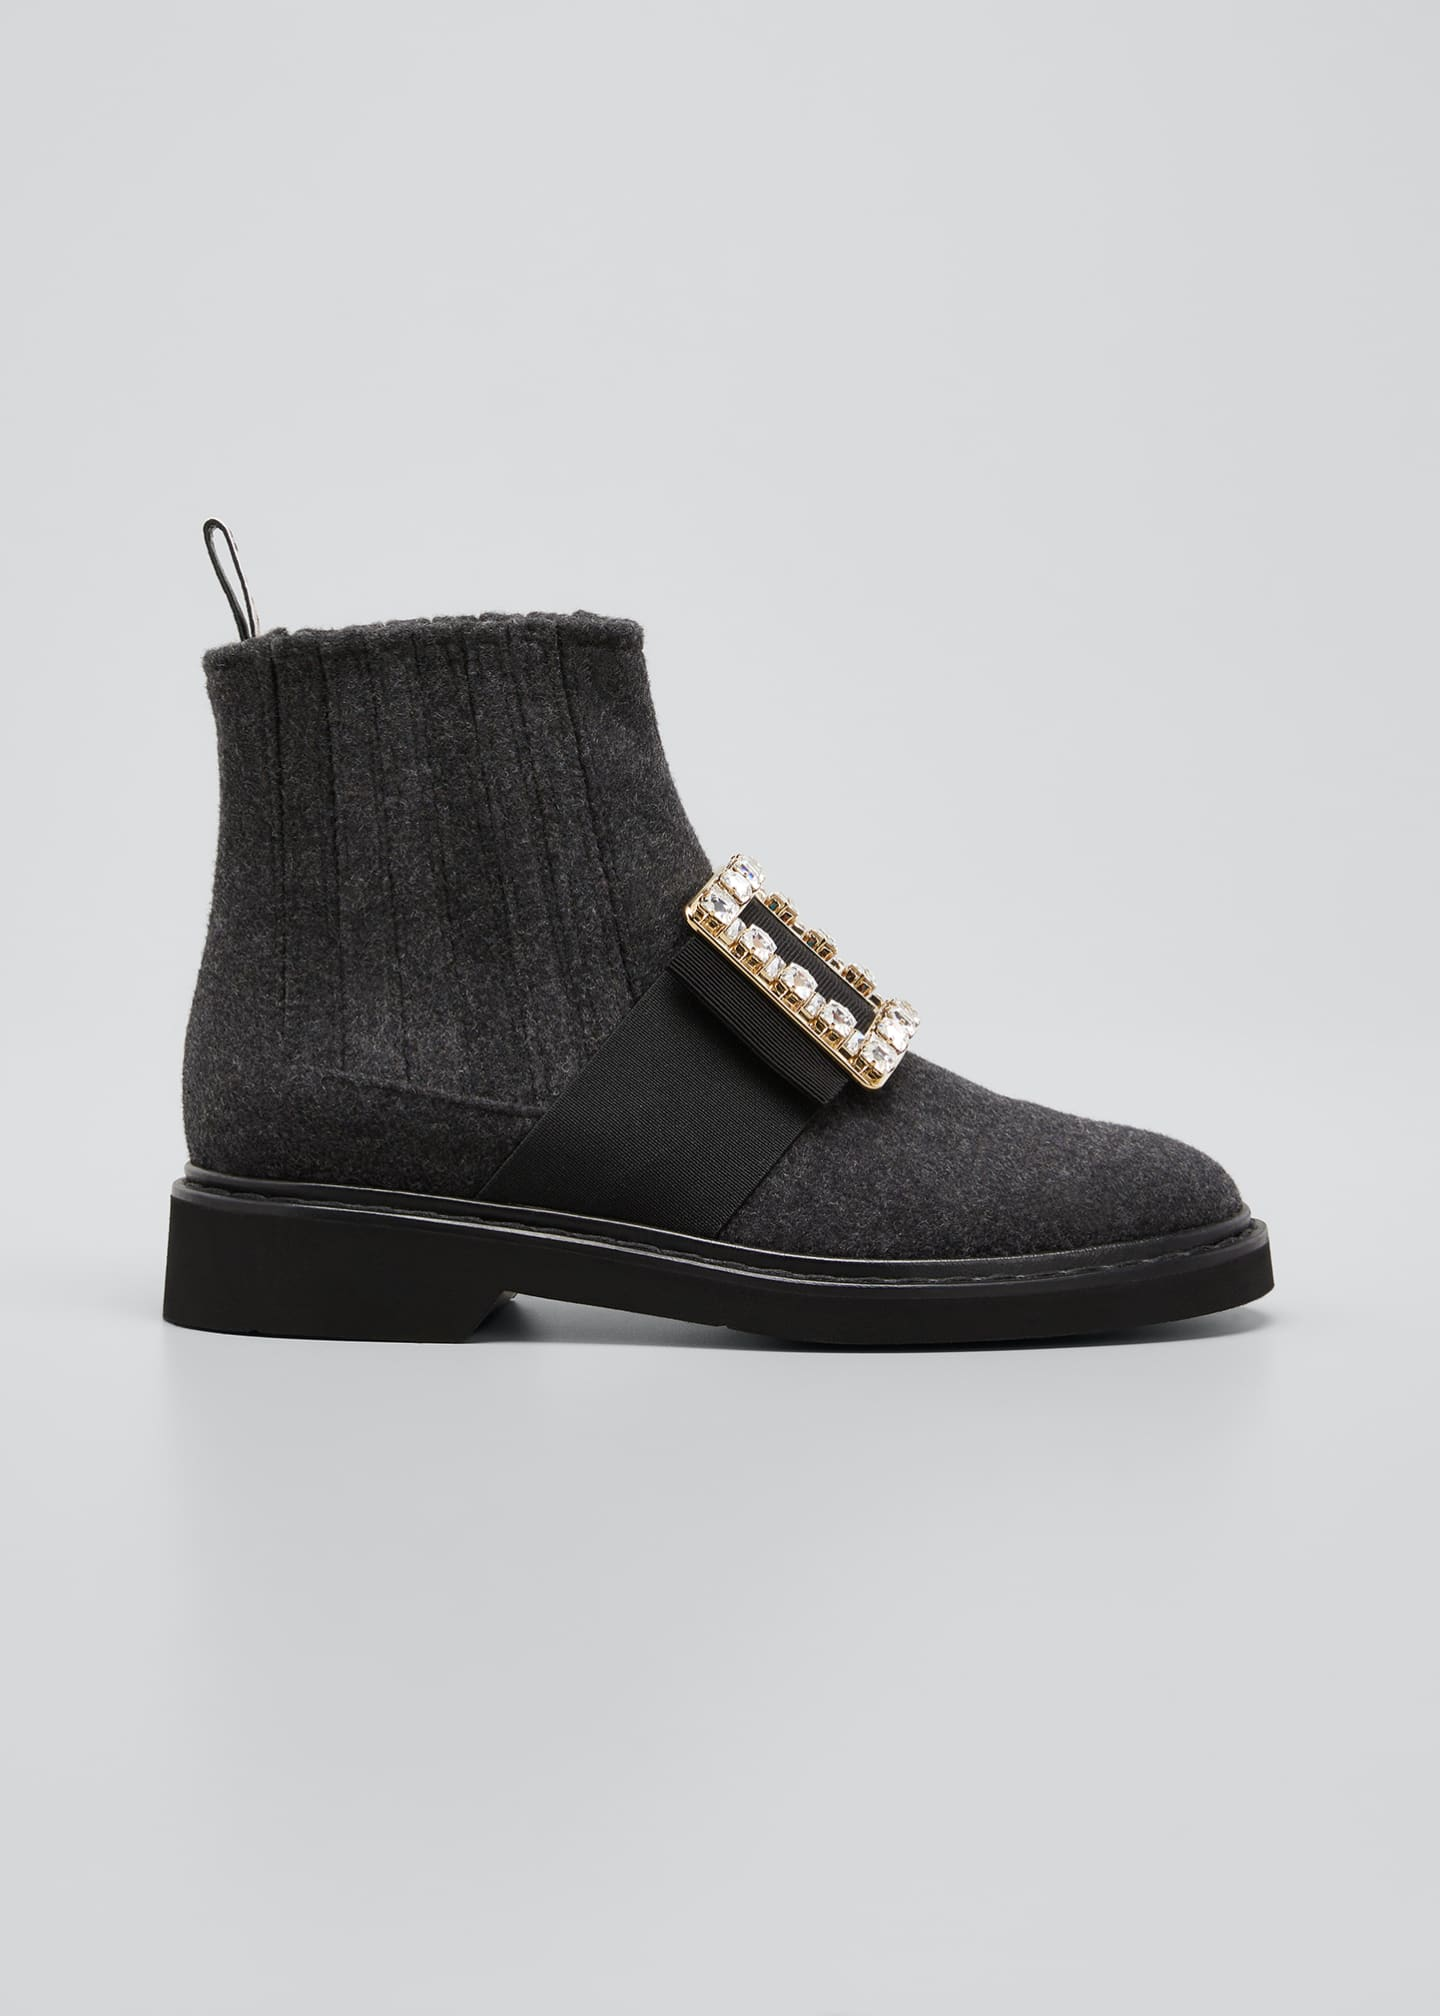 Image 1 of 5: Vivi Rangers Chelsea Booties with Crystal Buckle